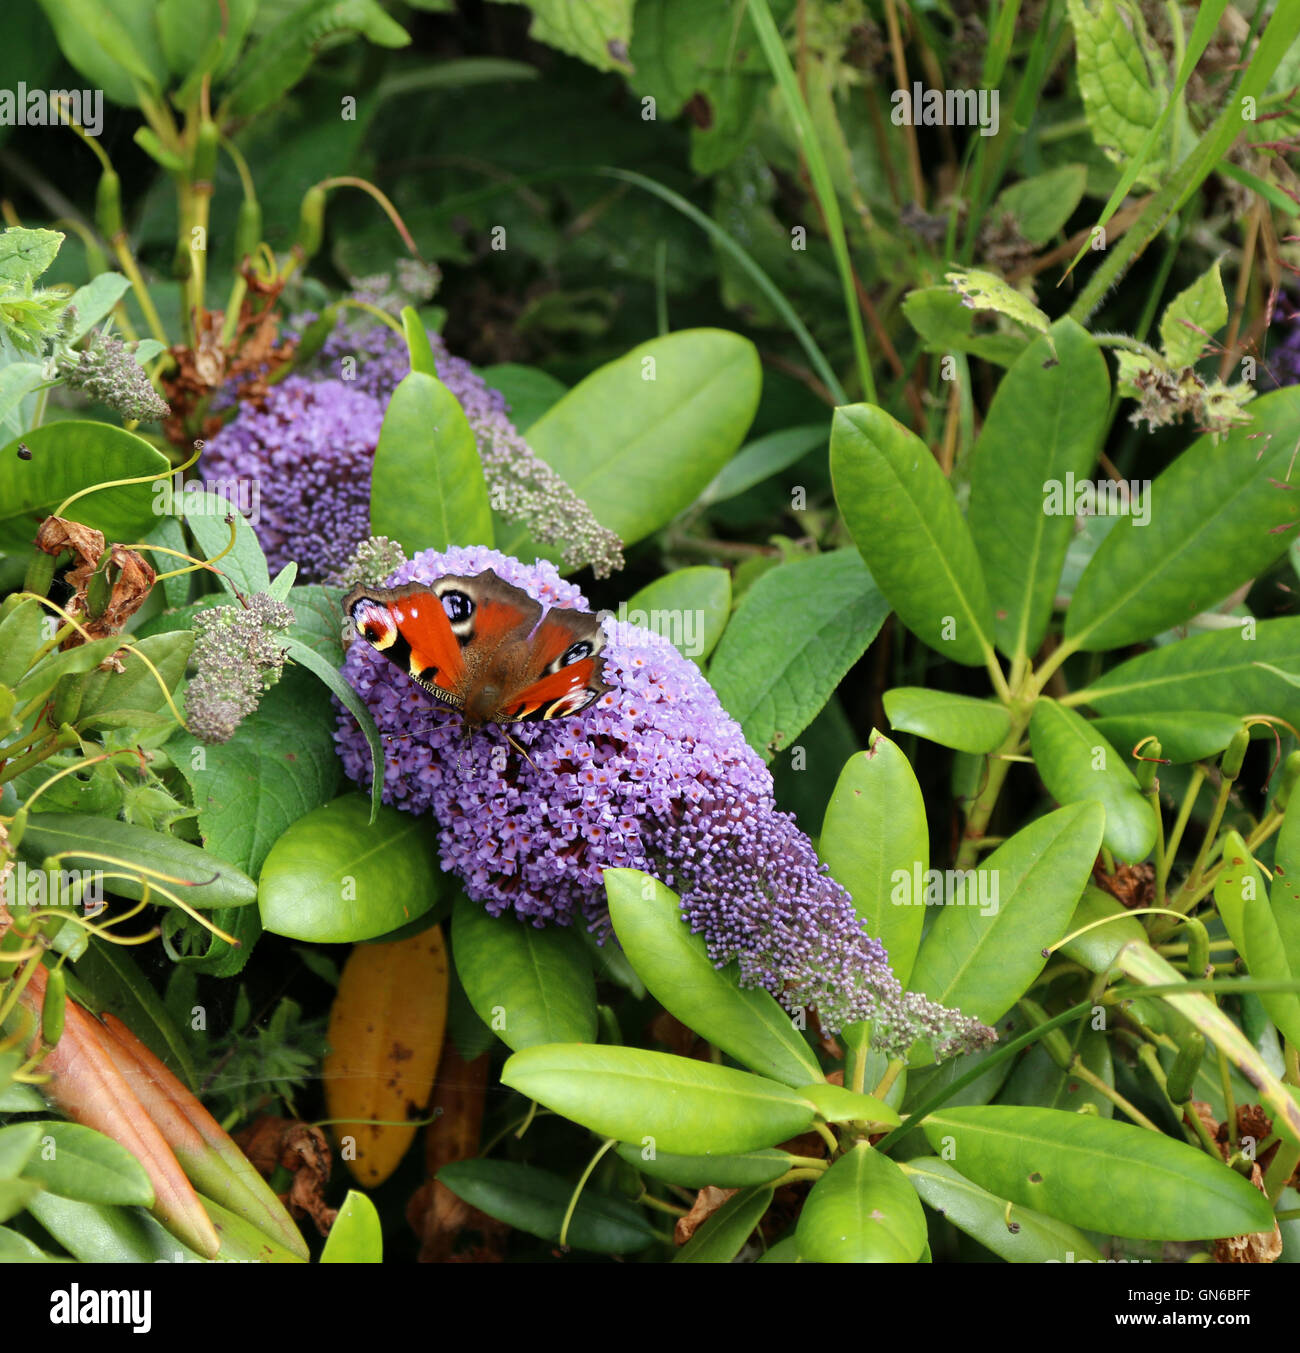 Peacock butterfly on buddleja - Stock Image